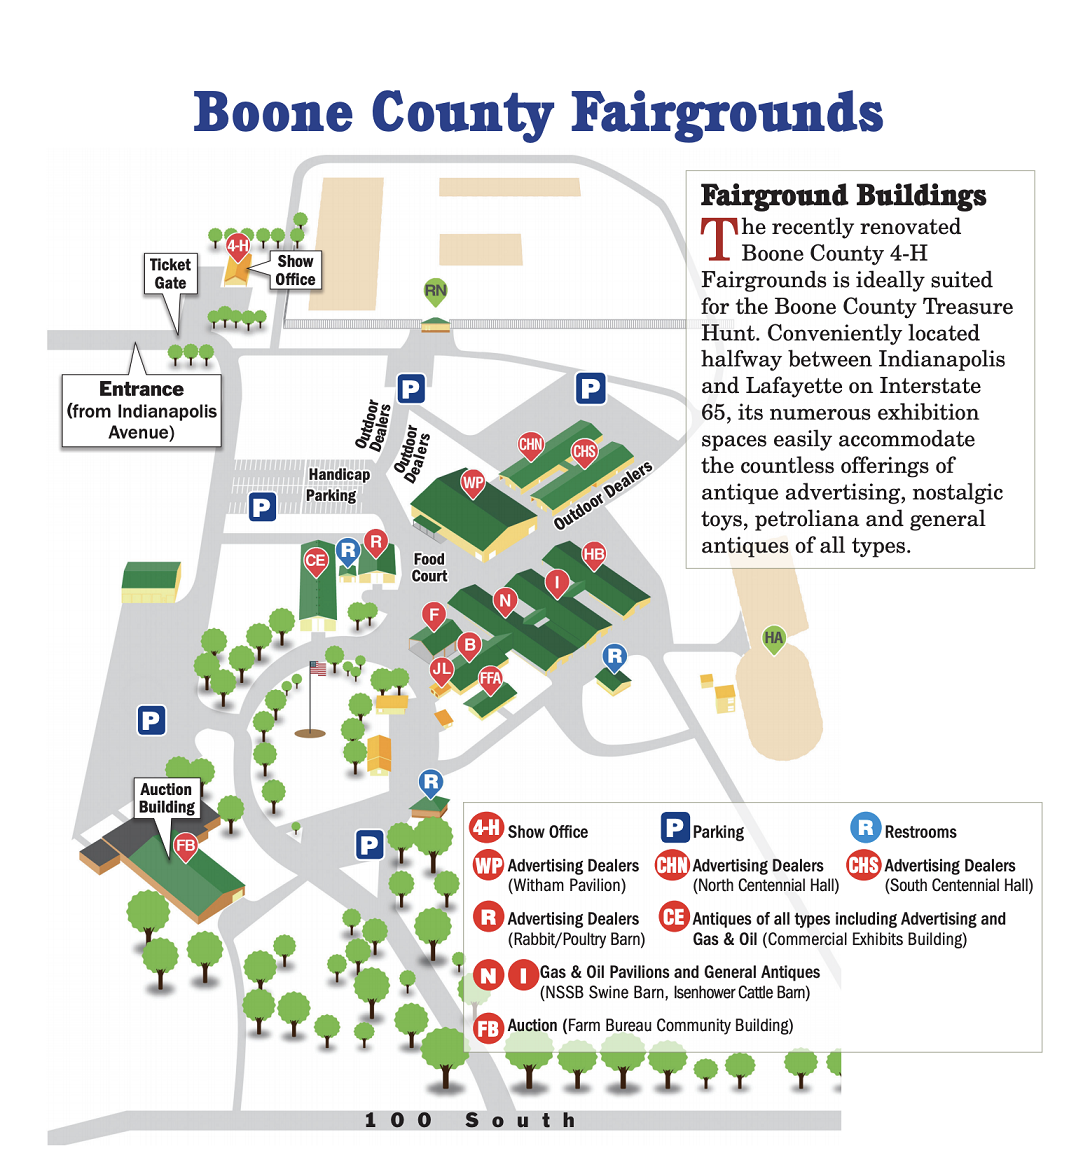 New Boone County 4-H Fairgrounds Map